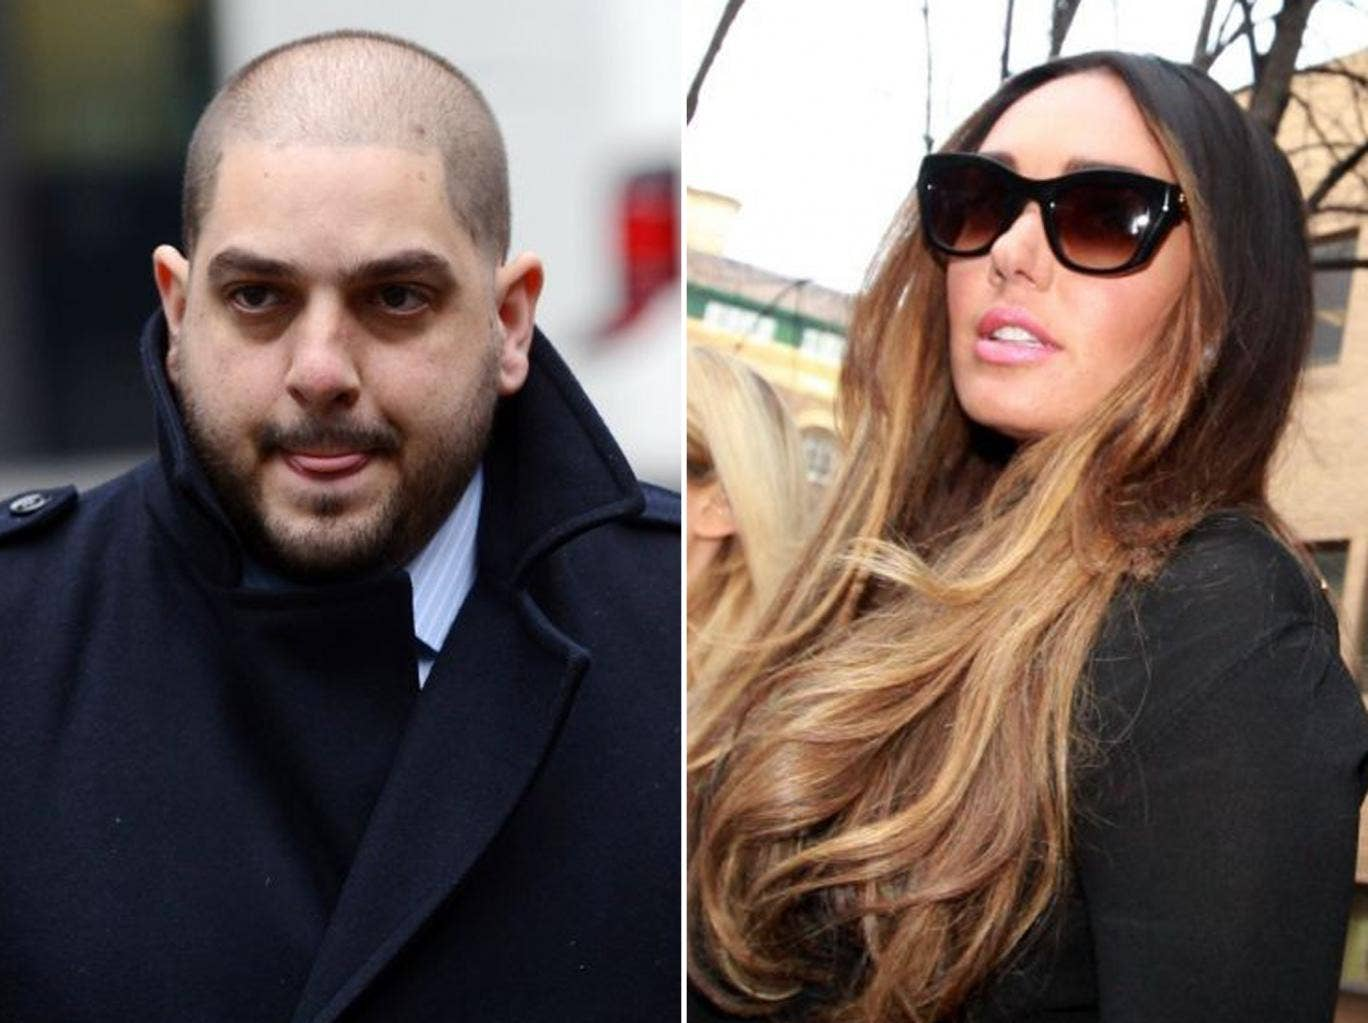 Derek Rose (left), the former fiance of Tamara Ecclestone (right), has been found guilty of blackmailing her